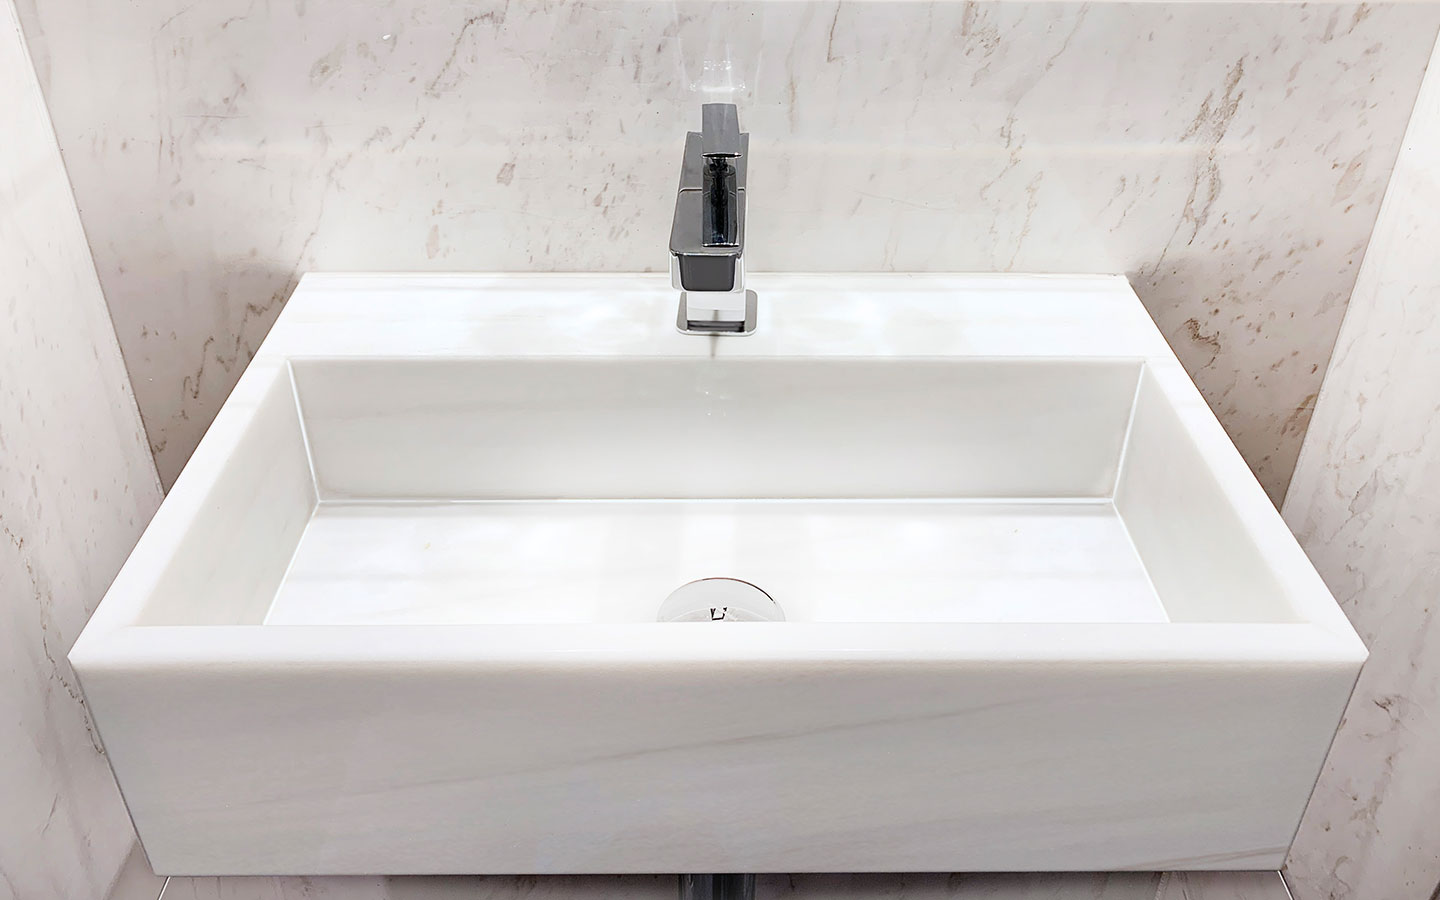 Custom-made white marble sink, supplied and installed by M&G Ltd – Private residential